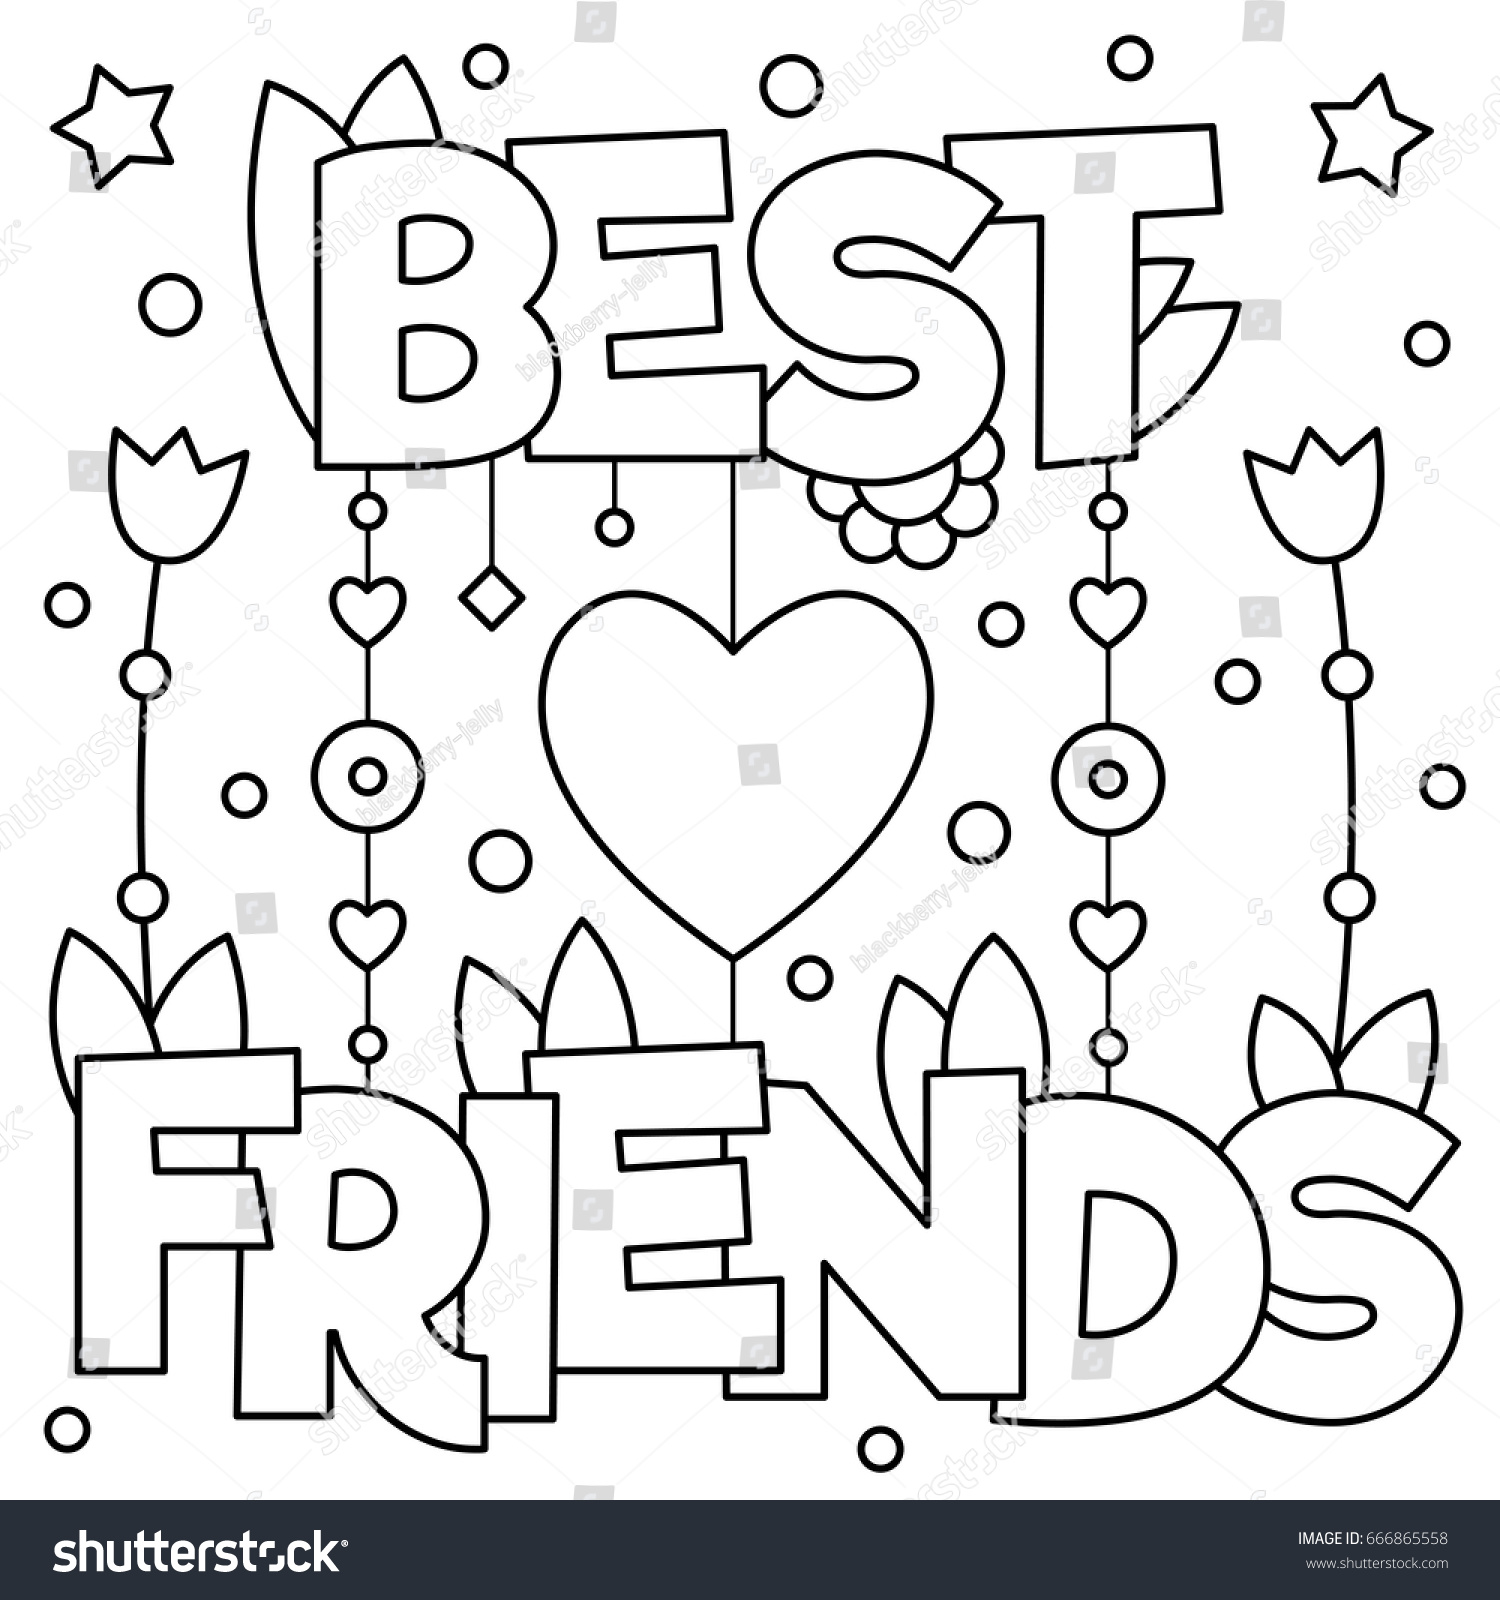 Best Friends Coloring Page Vector Illustration Stock Vector Best Friend Coloring Pages